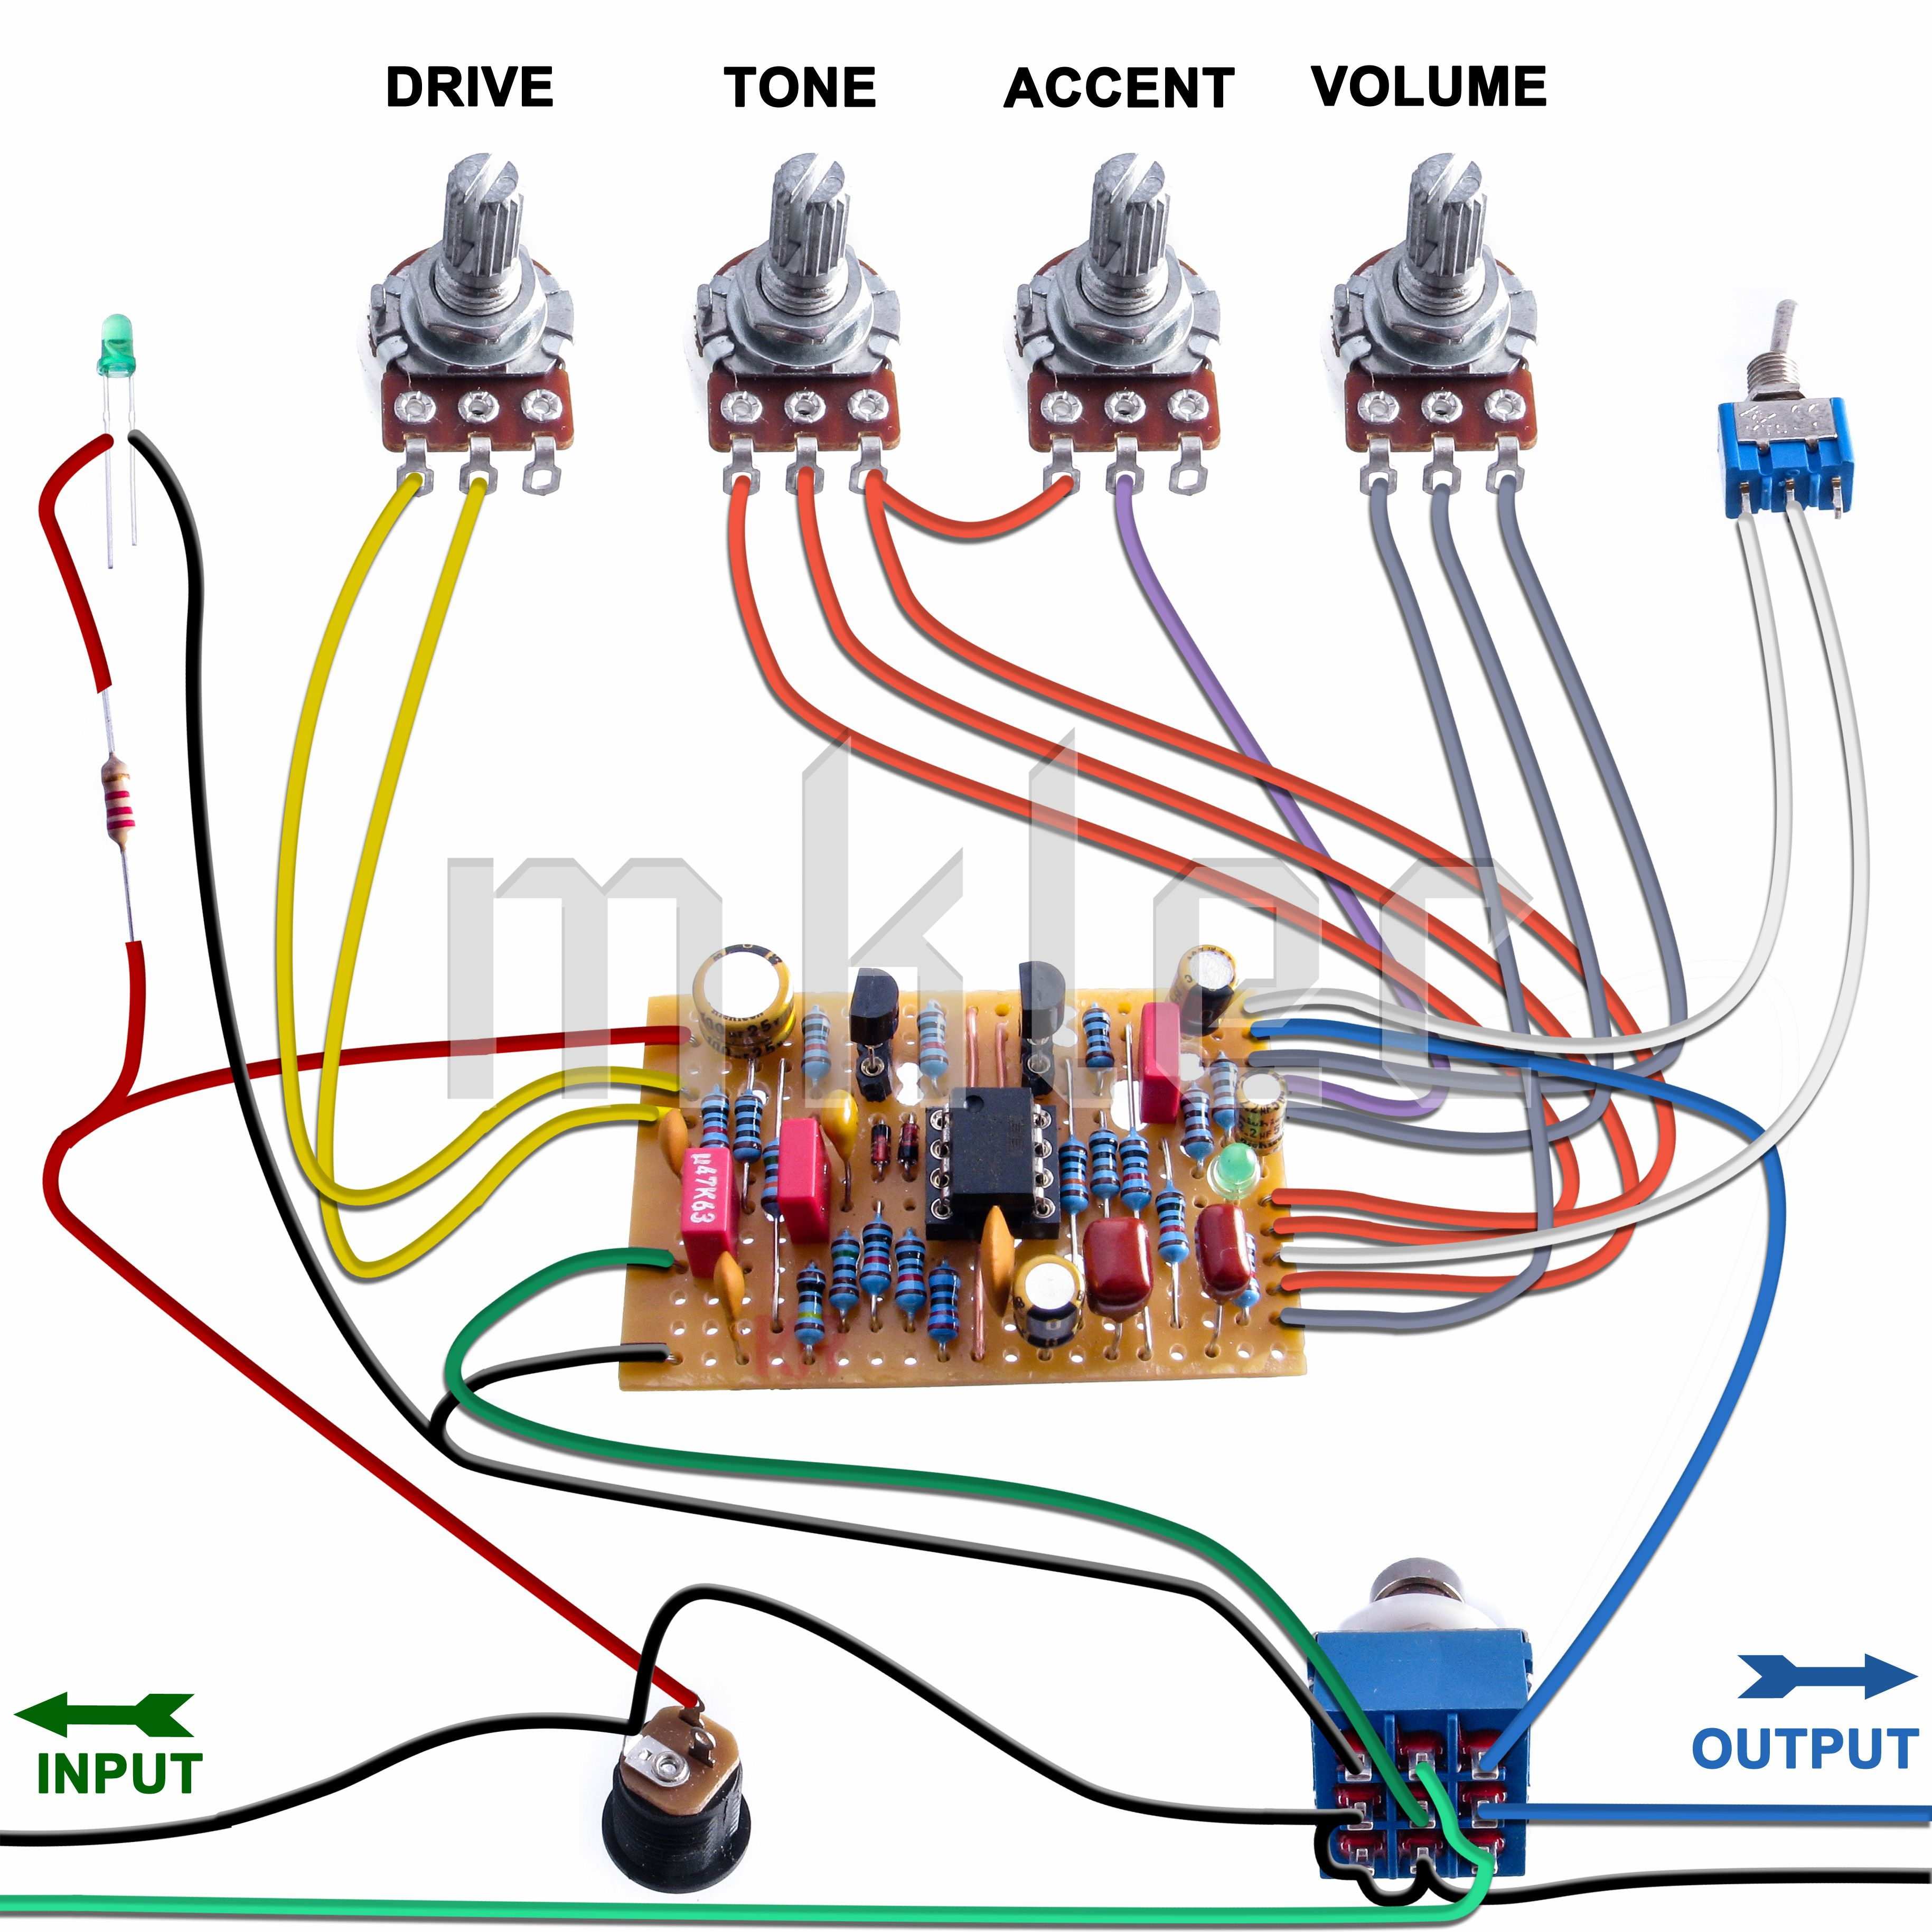 Cool Ibanez Jem Wiring Tiny Bass Pickup Configurations Rectangular Wiring Diagram For Les Paul Guitar 3 Humbuckers Old Ibanez Humbuckers BrownReplacing A Circuit Breaker Guitar Effects Pedal Offboard Wiring Demystified | Guitar FX ..